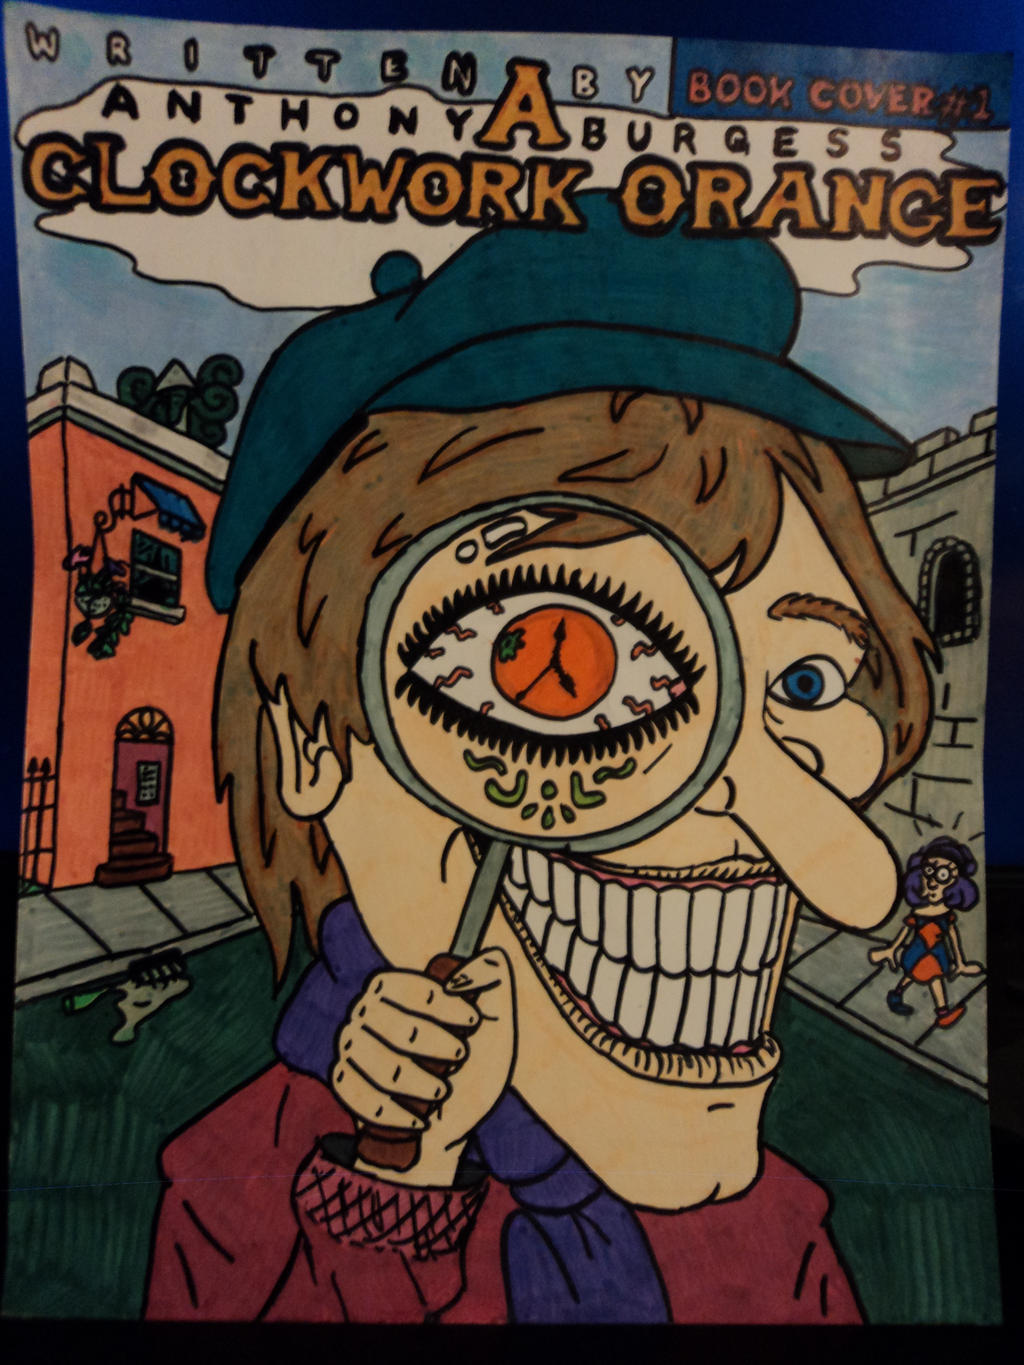 an analysis of the teenagers free will in the novel a clockwork orange View a clockwork orange research papers on academiaedu for free skip to main content log in  study guide for a clockwork orange as novel and film.